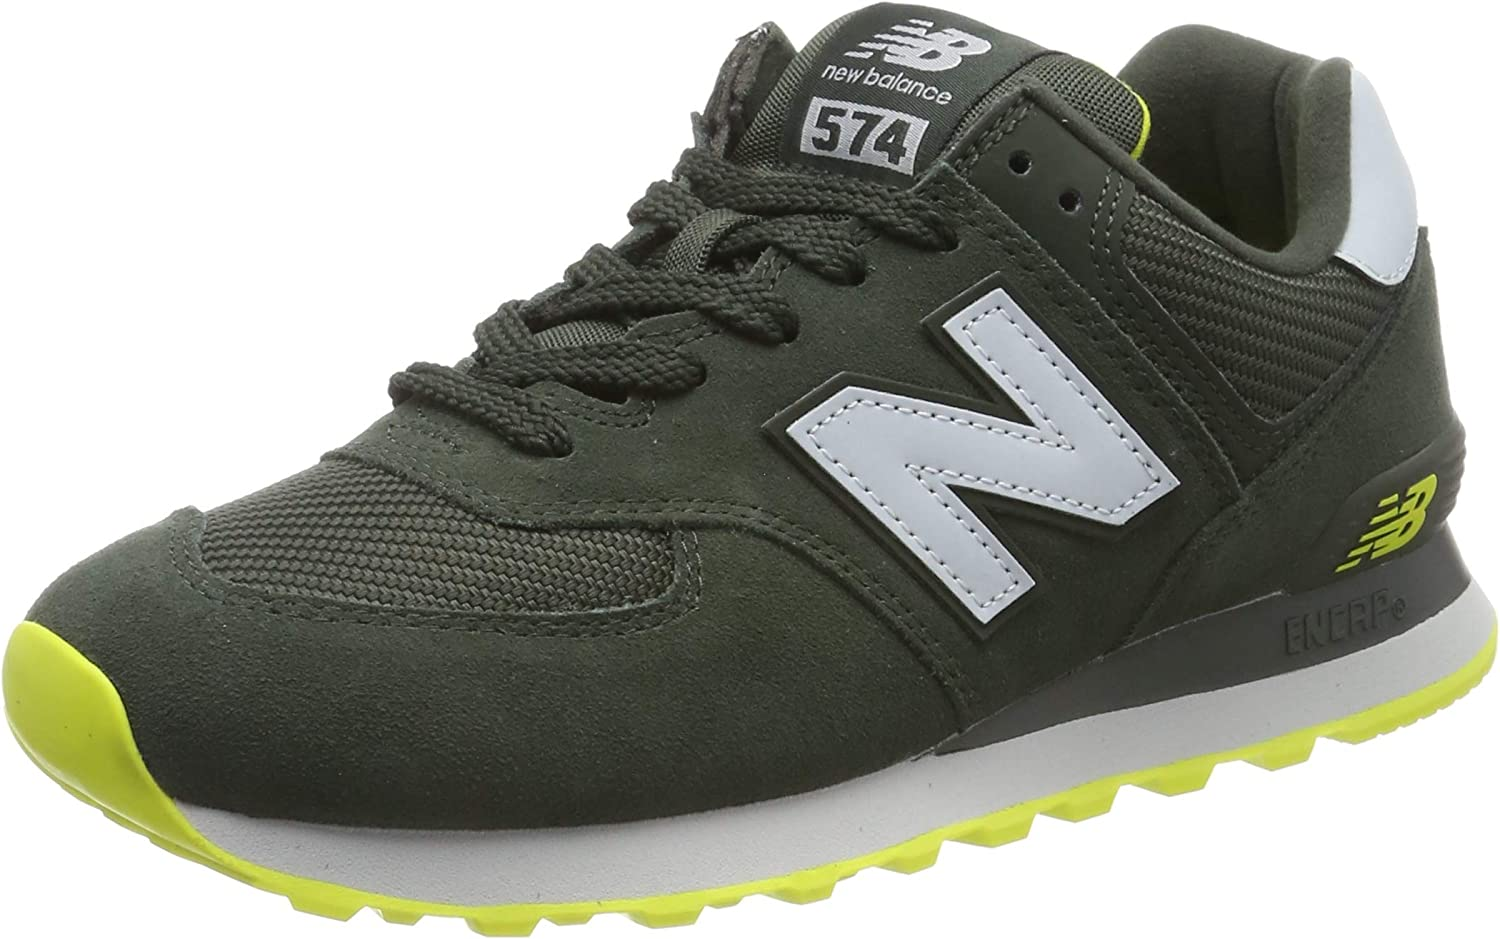 New Balance Men's 574 Suede Trainers